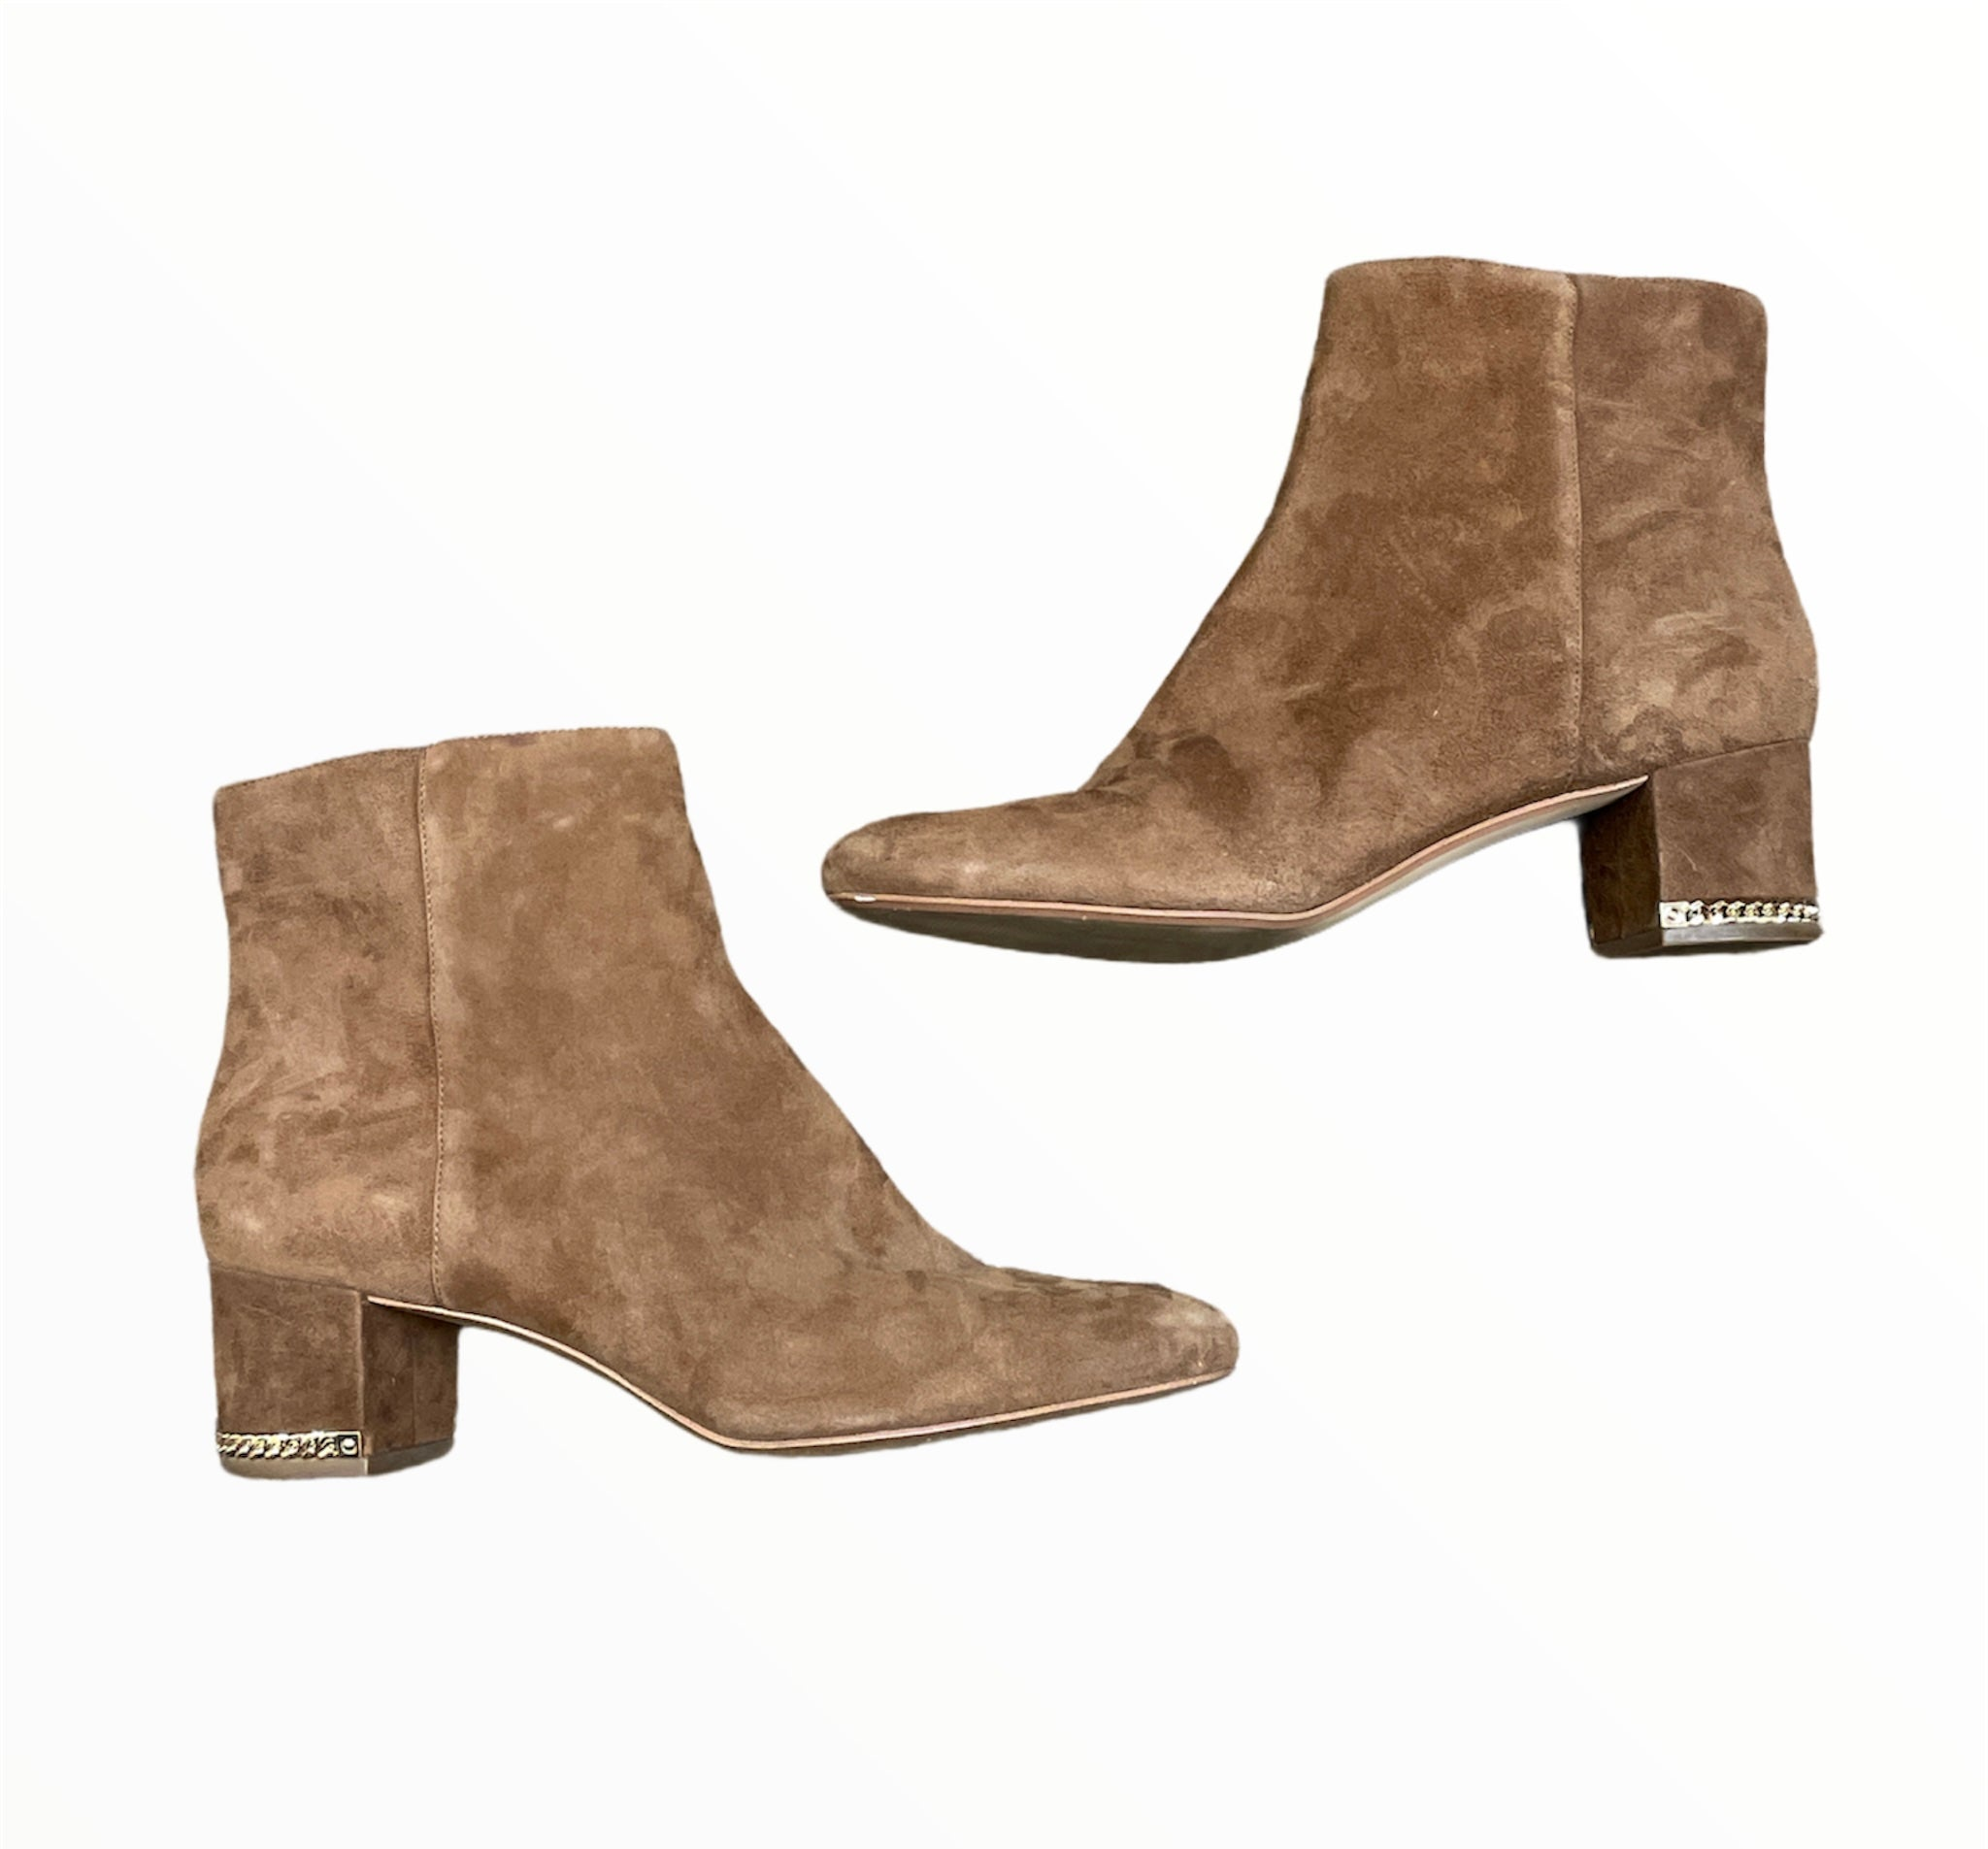 Primary Photo - BRAND: MICHAEL KORS <BR>STYLE: BOOTS ANKLE <BR>COLOR: CAMEL <BR>SIZE: 11 <BR>SKU: 223-22364-43323